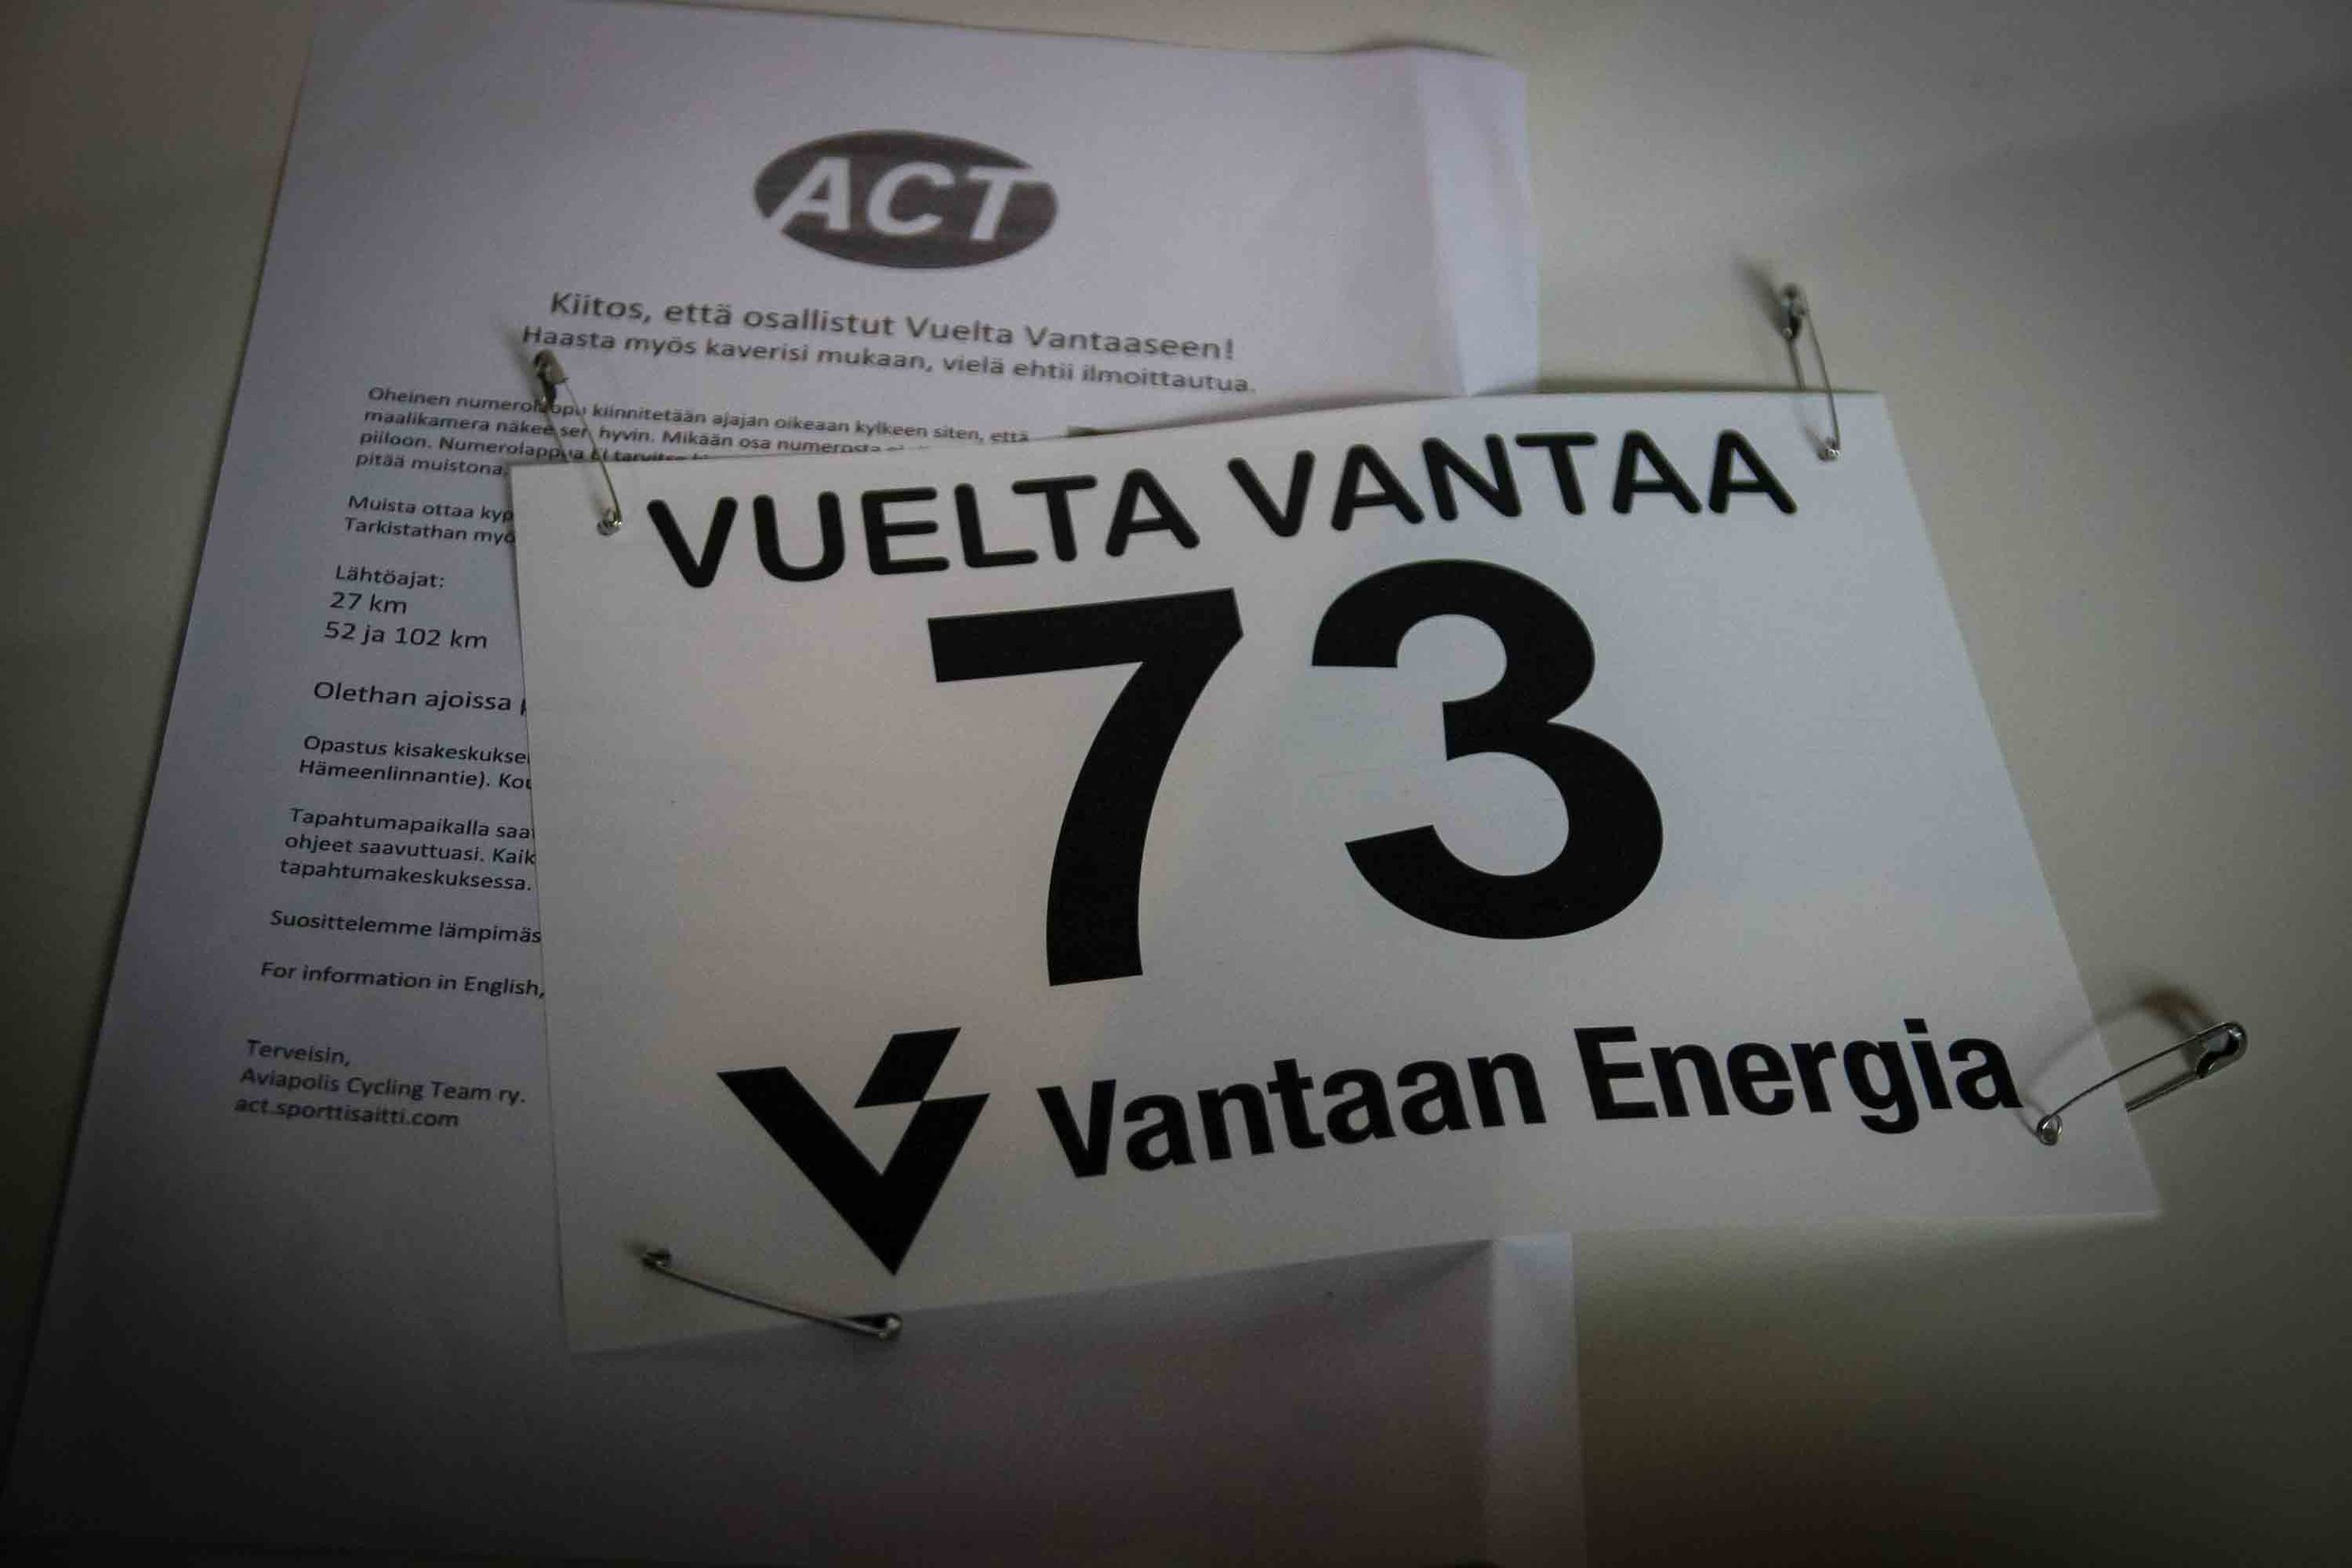 My race number tomorrow